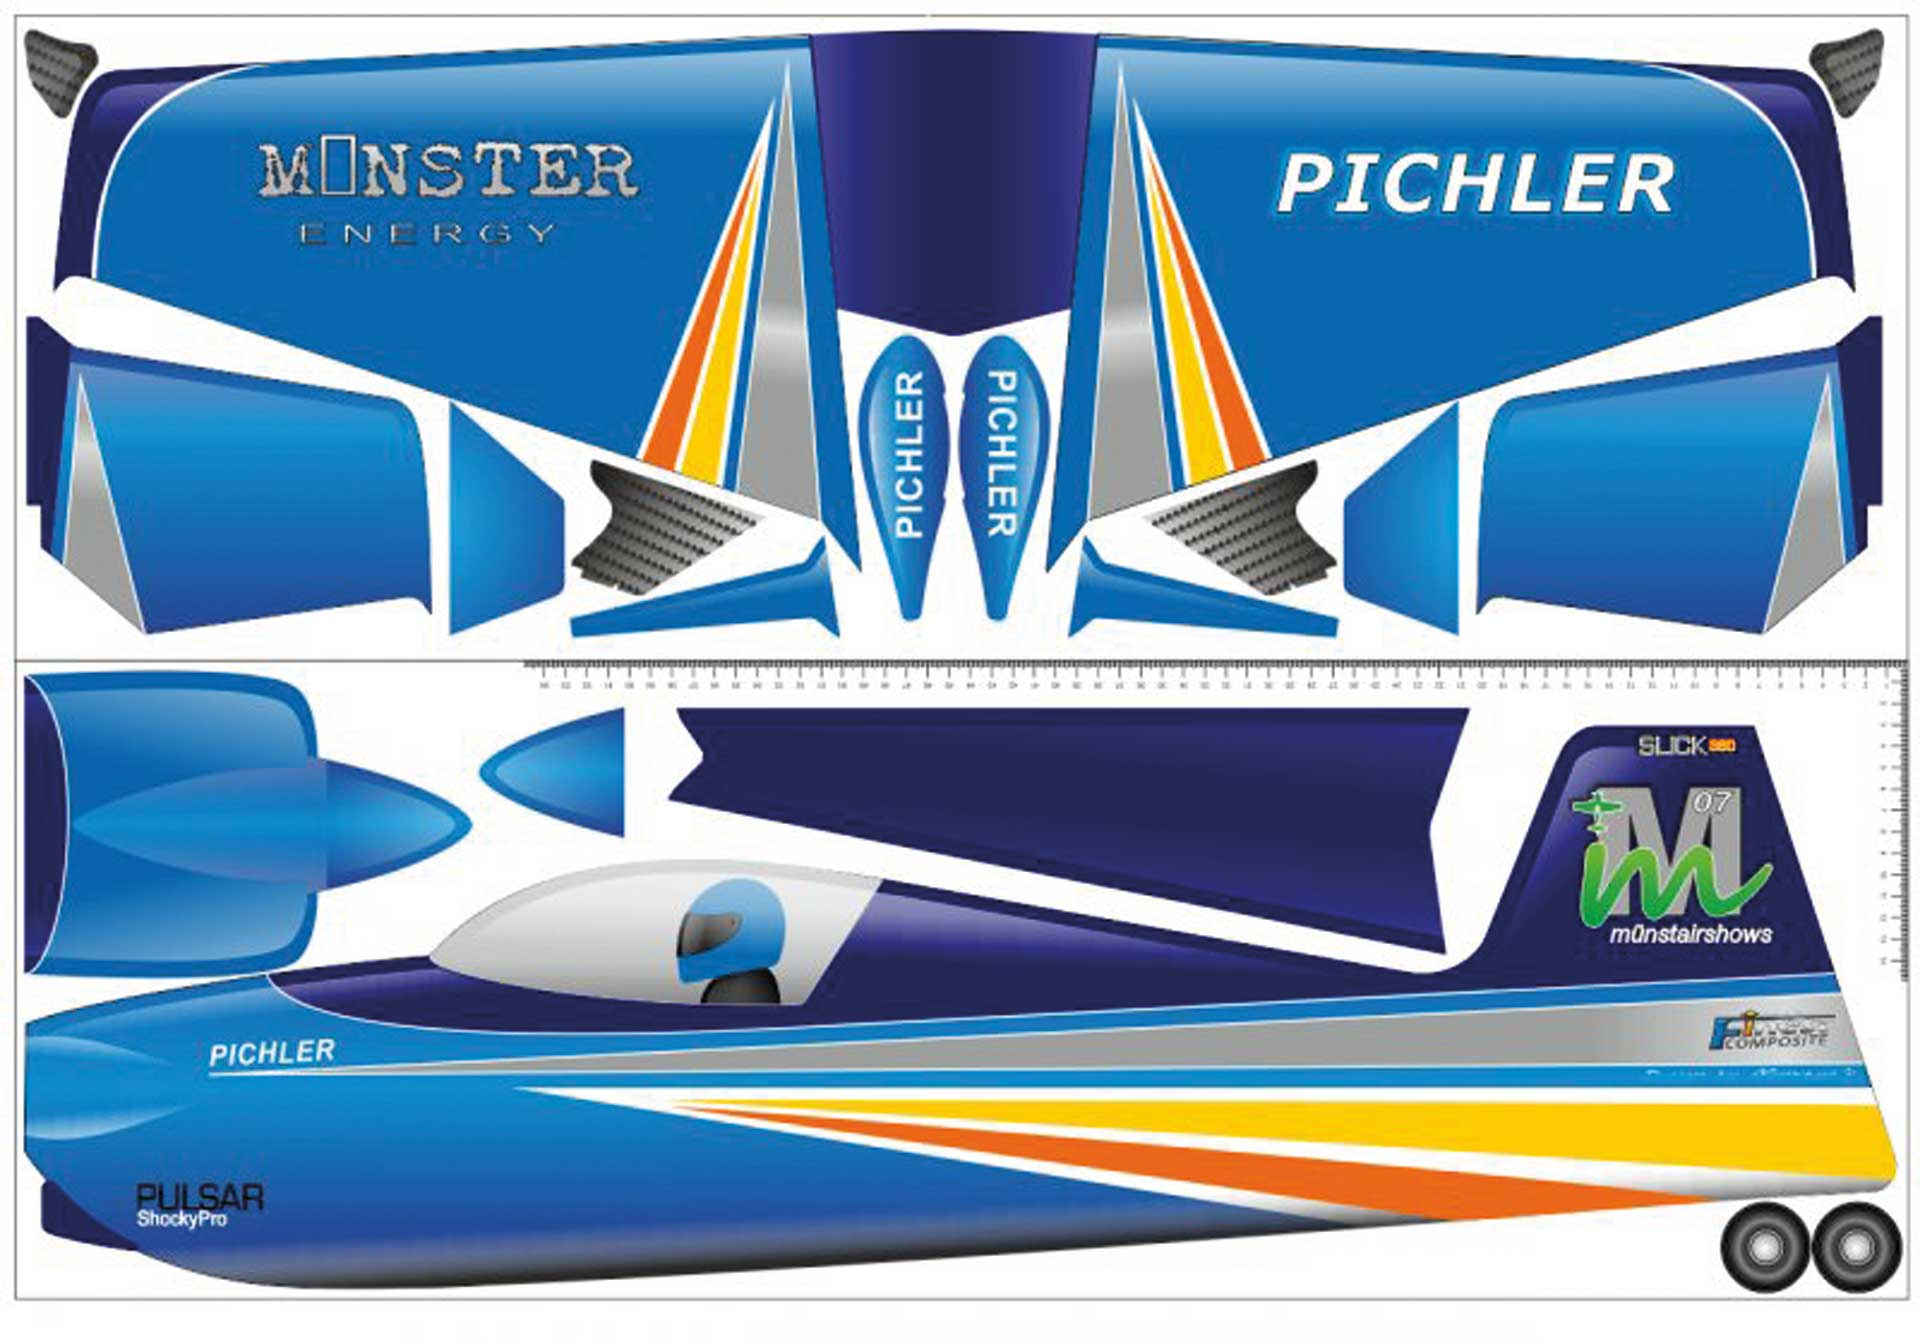 PICHLER Slick 360 (blue) / 840 mm made of Super Board